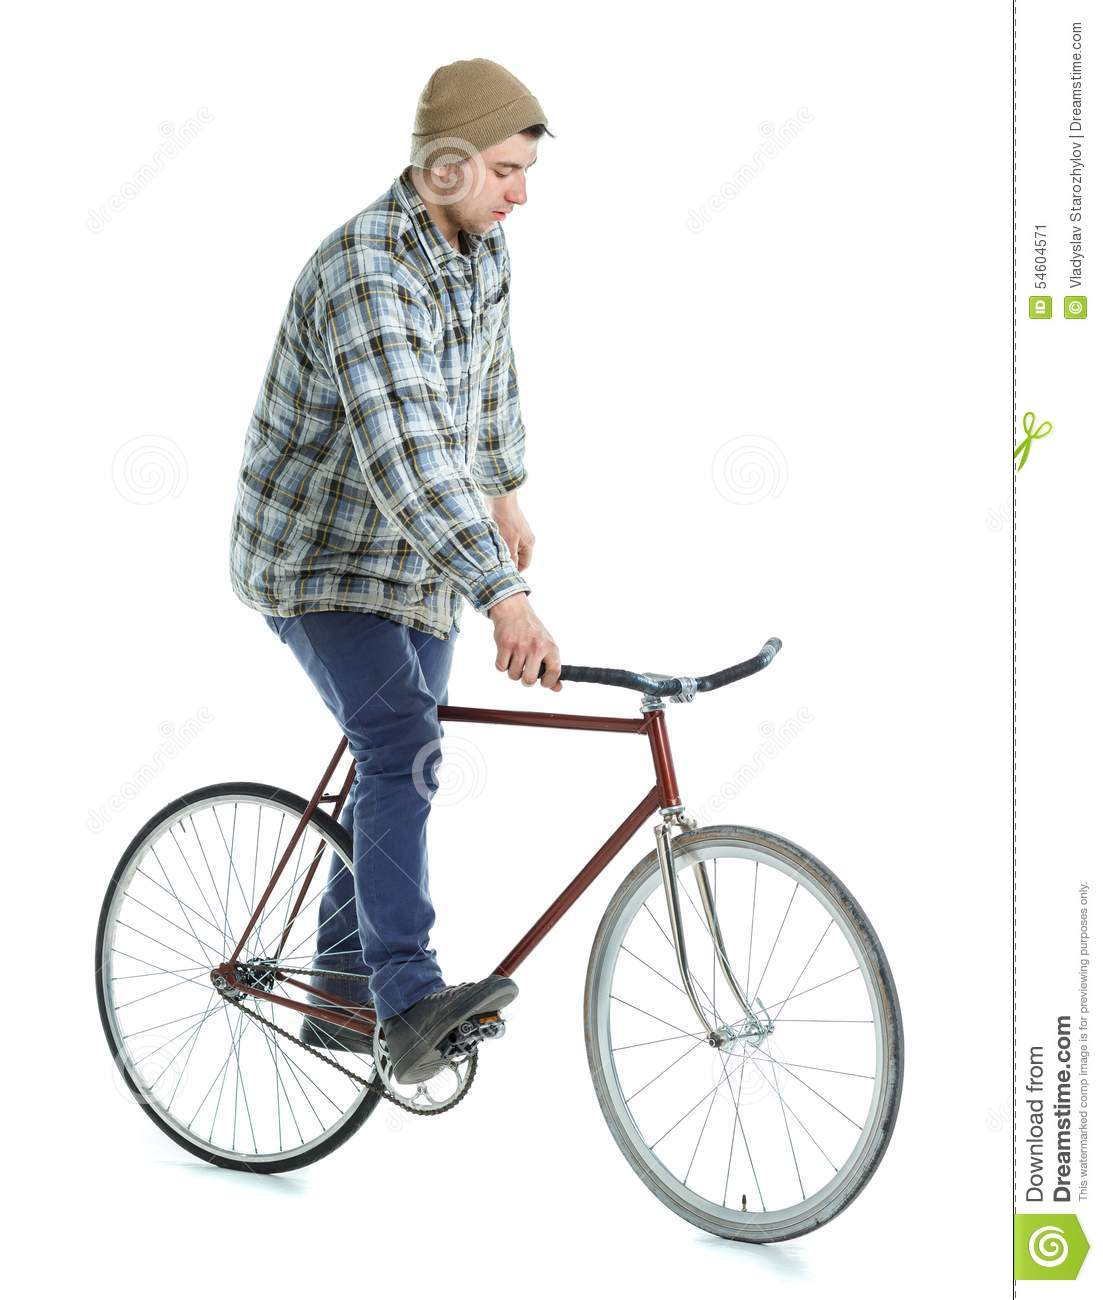 Young man doing tricks on fixed gear bicycle on a white